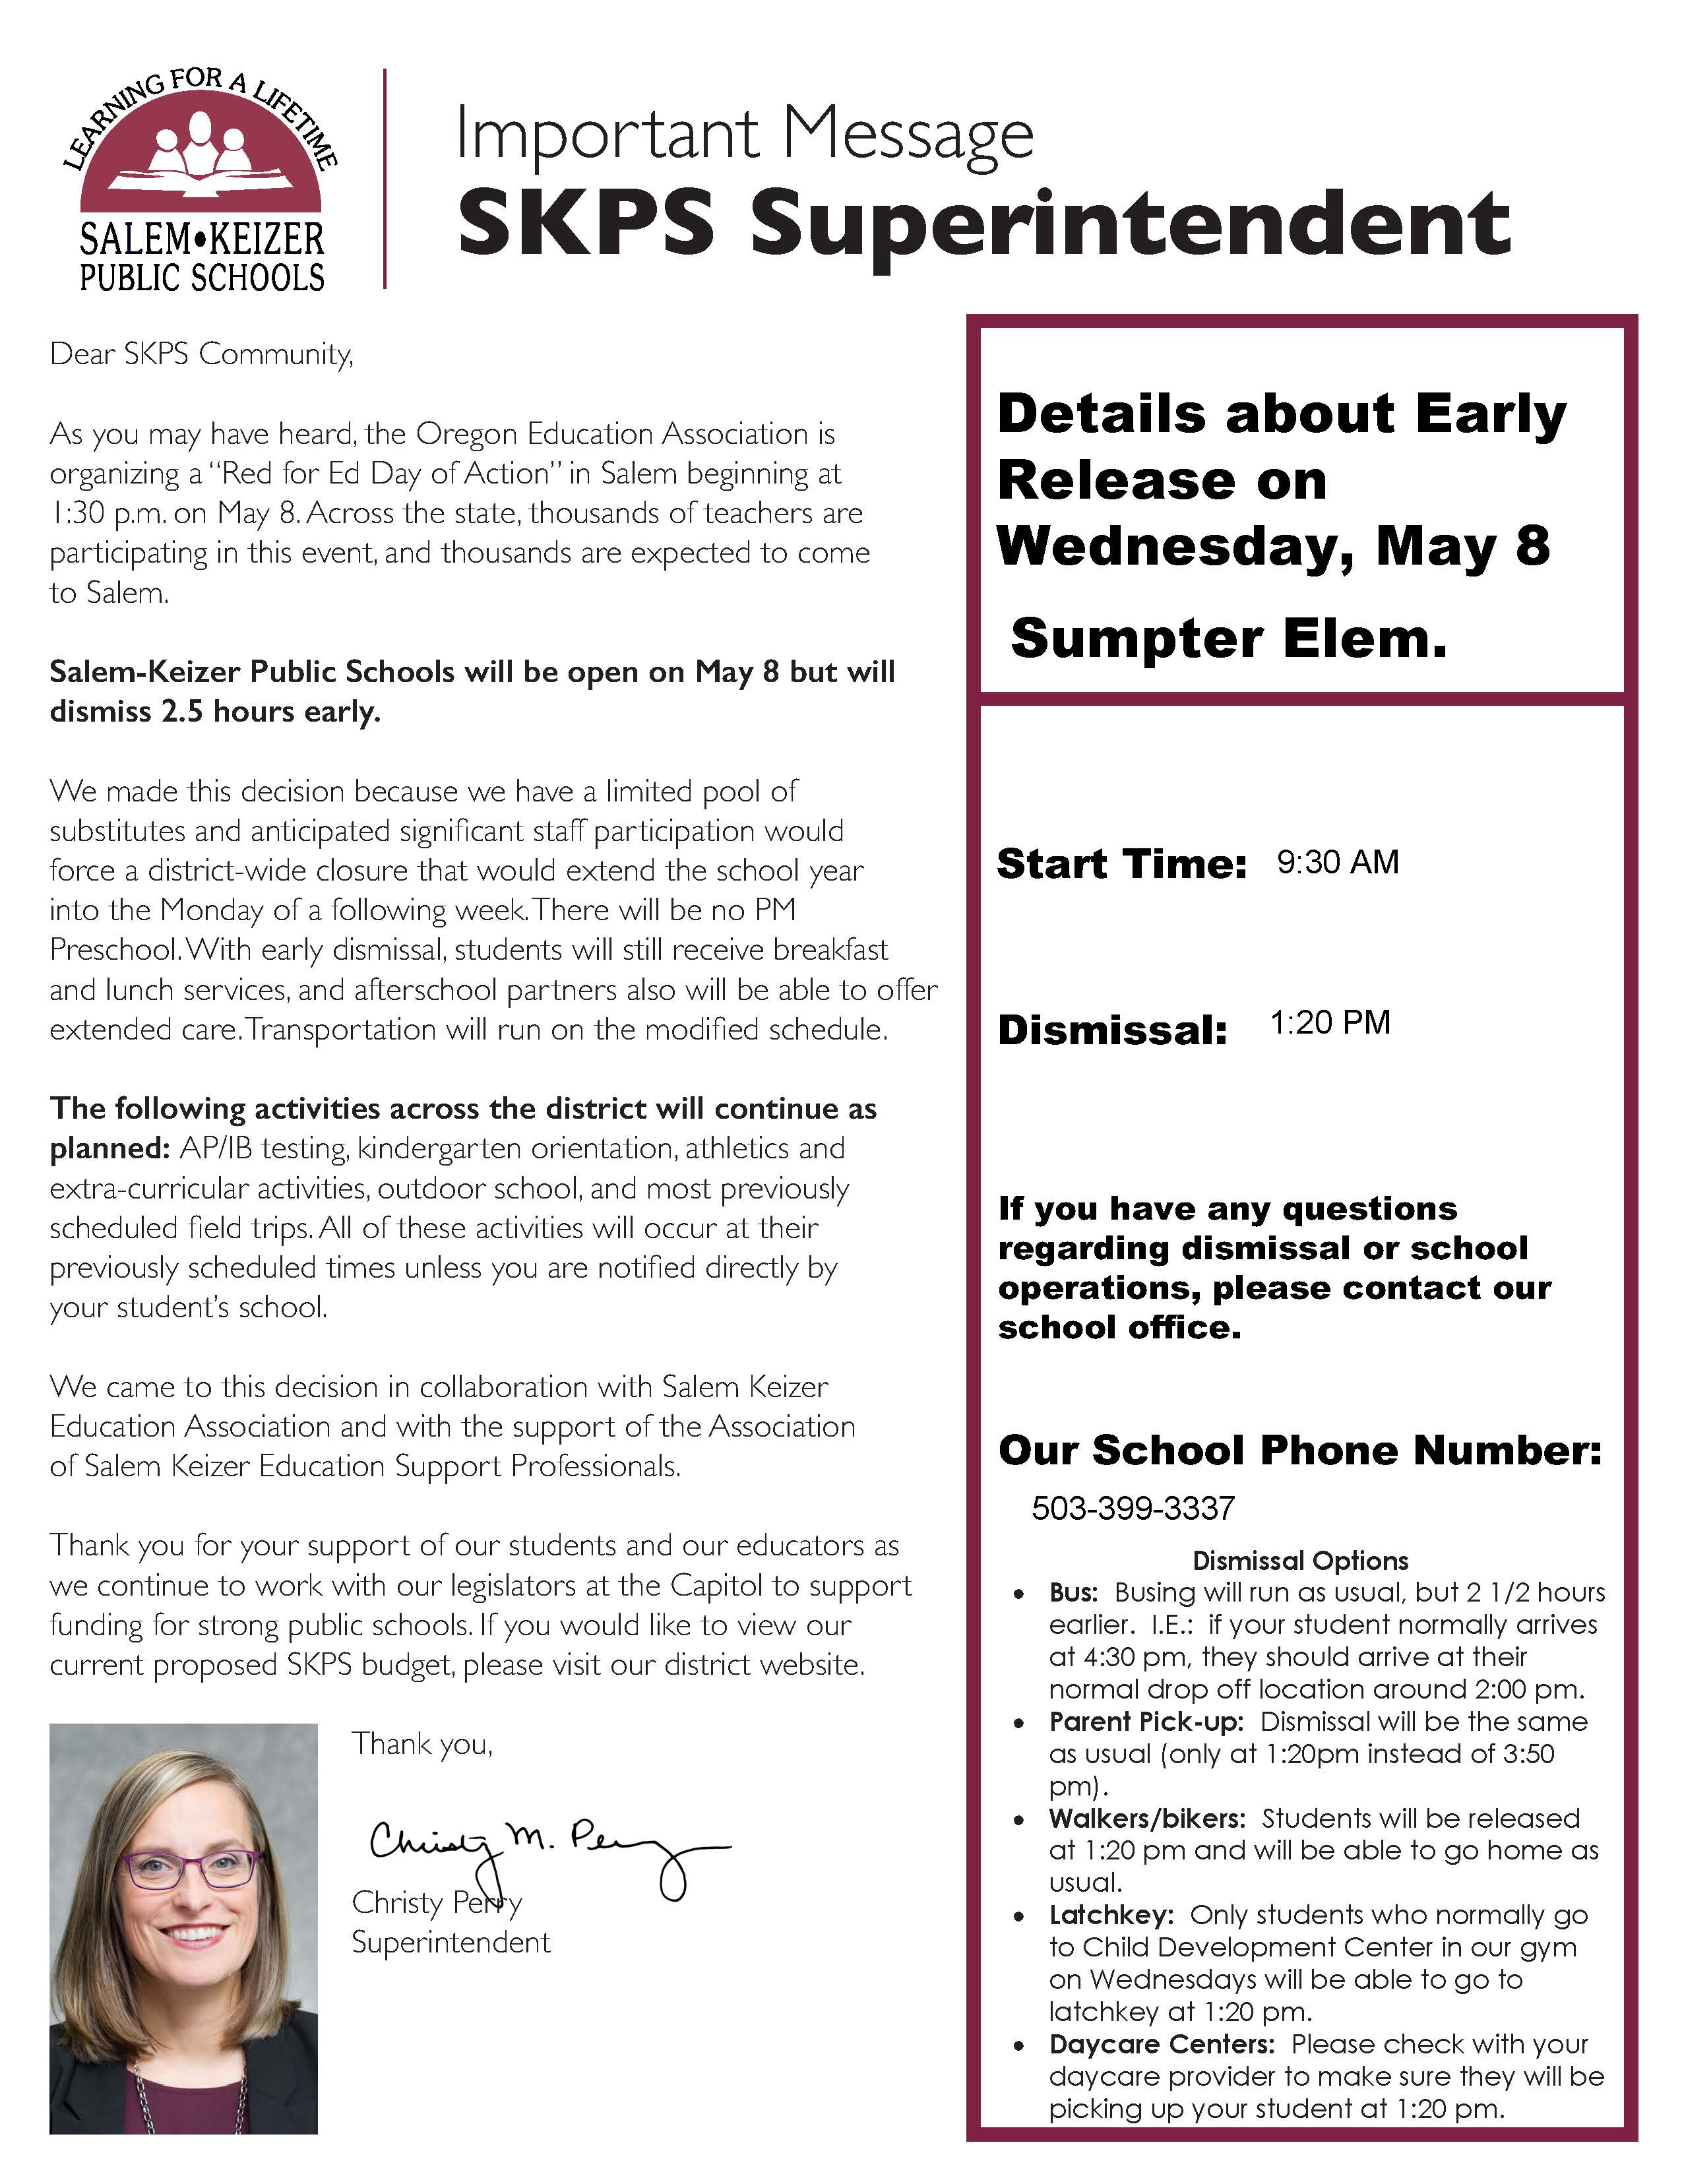 Early Release on Wednesday, May 8th